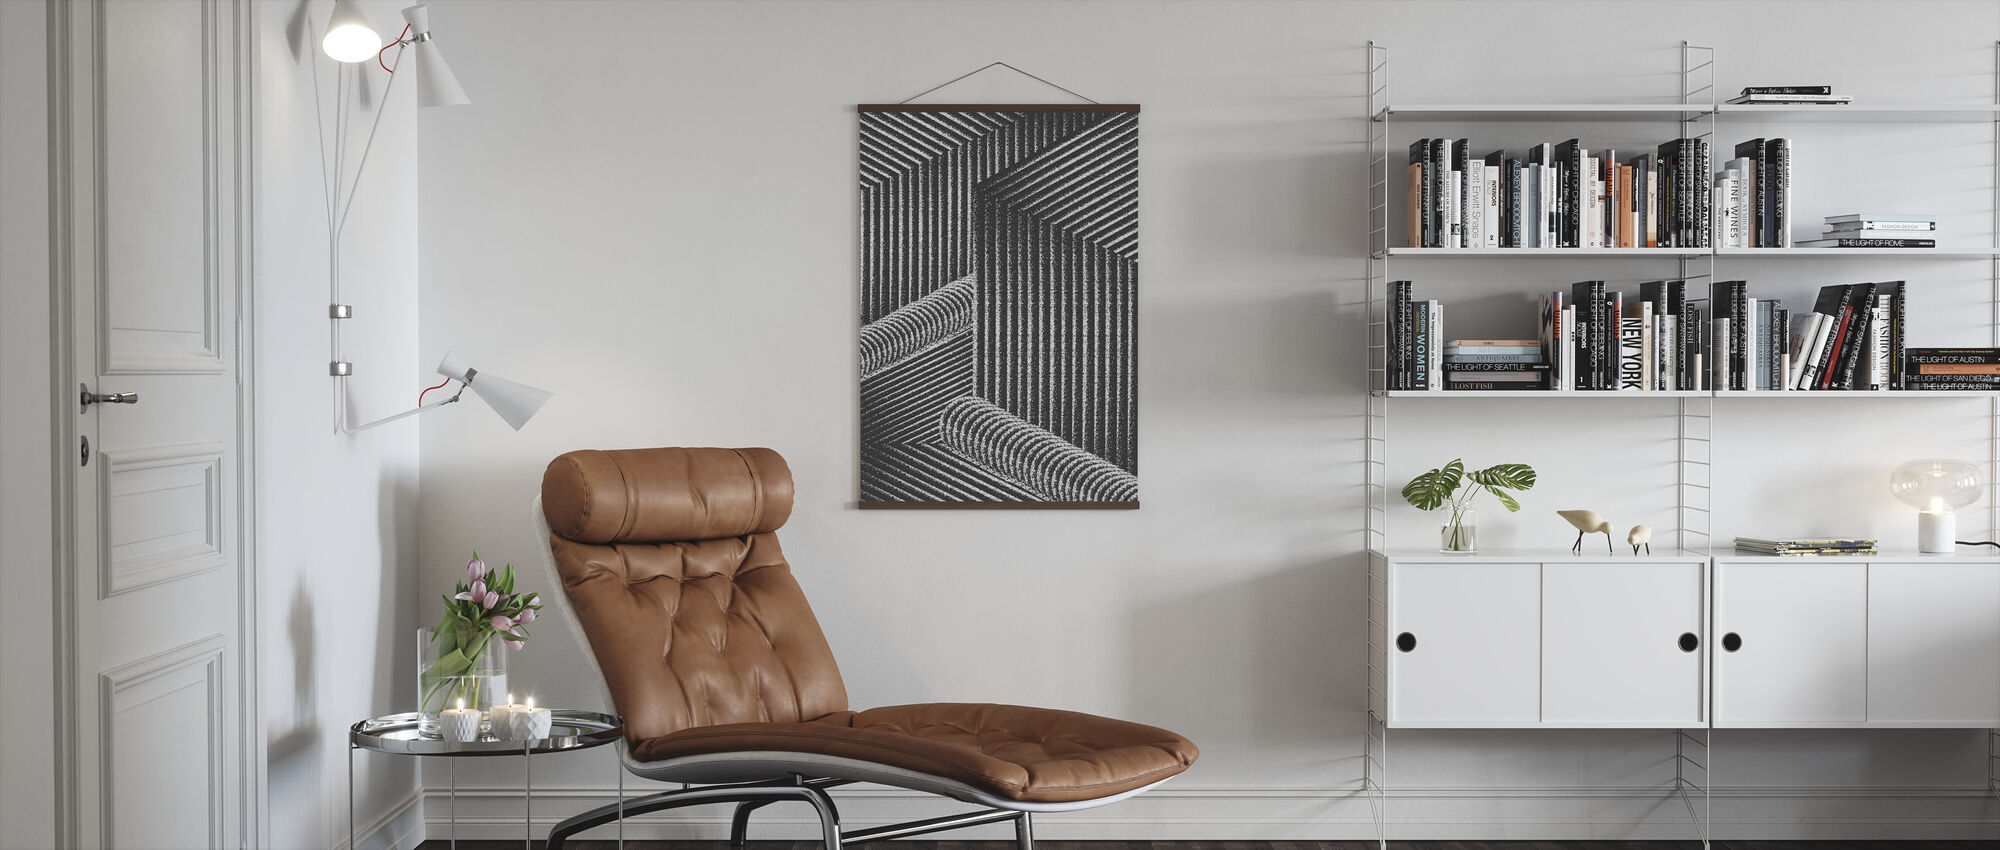 Waterval - Poster - Woonkamer